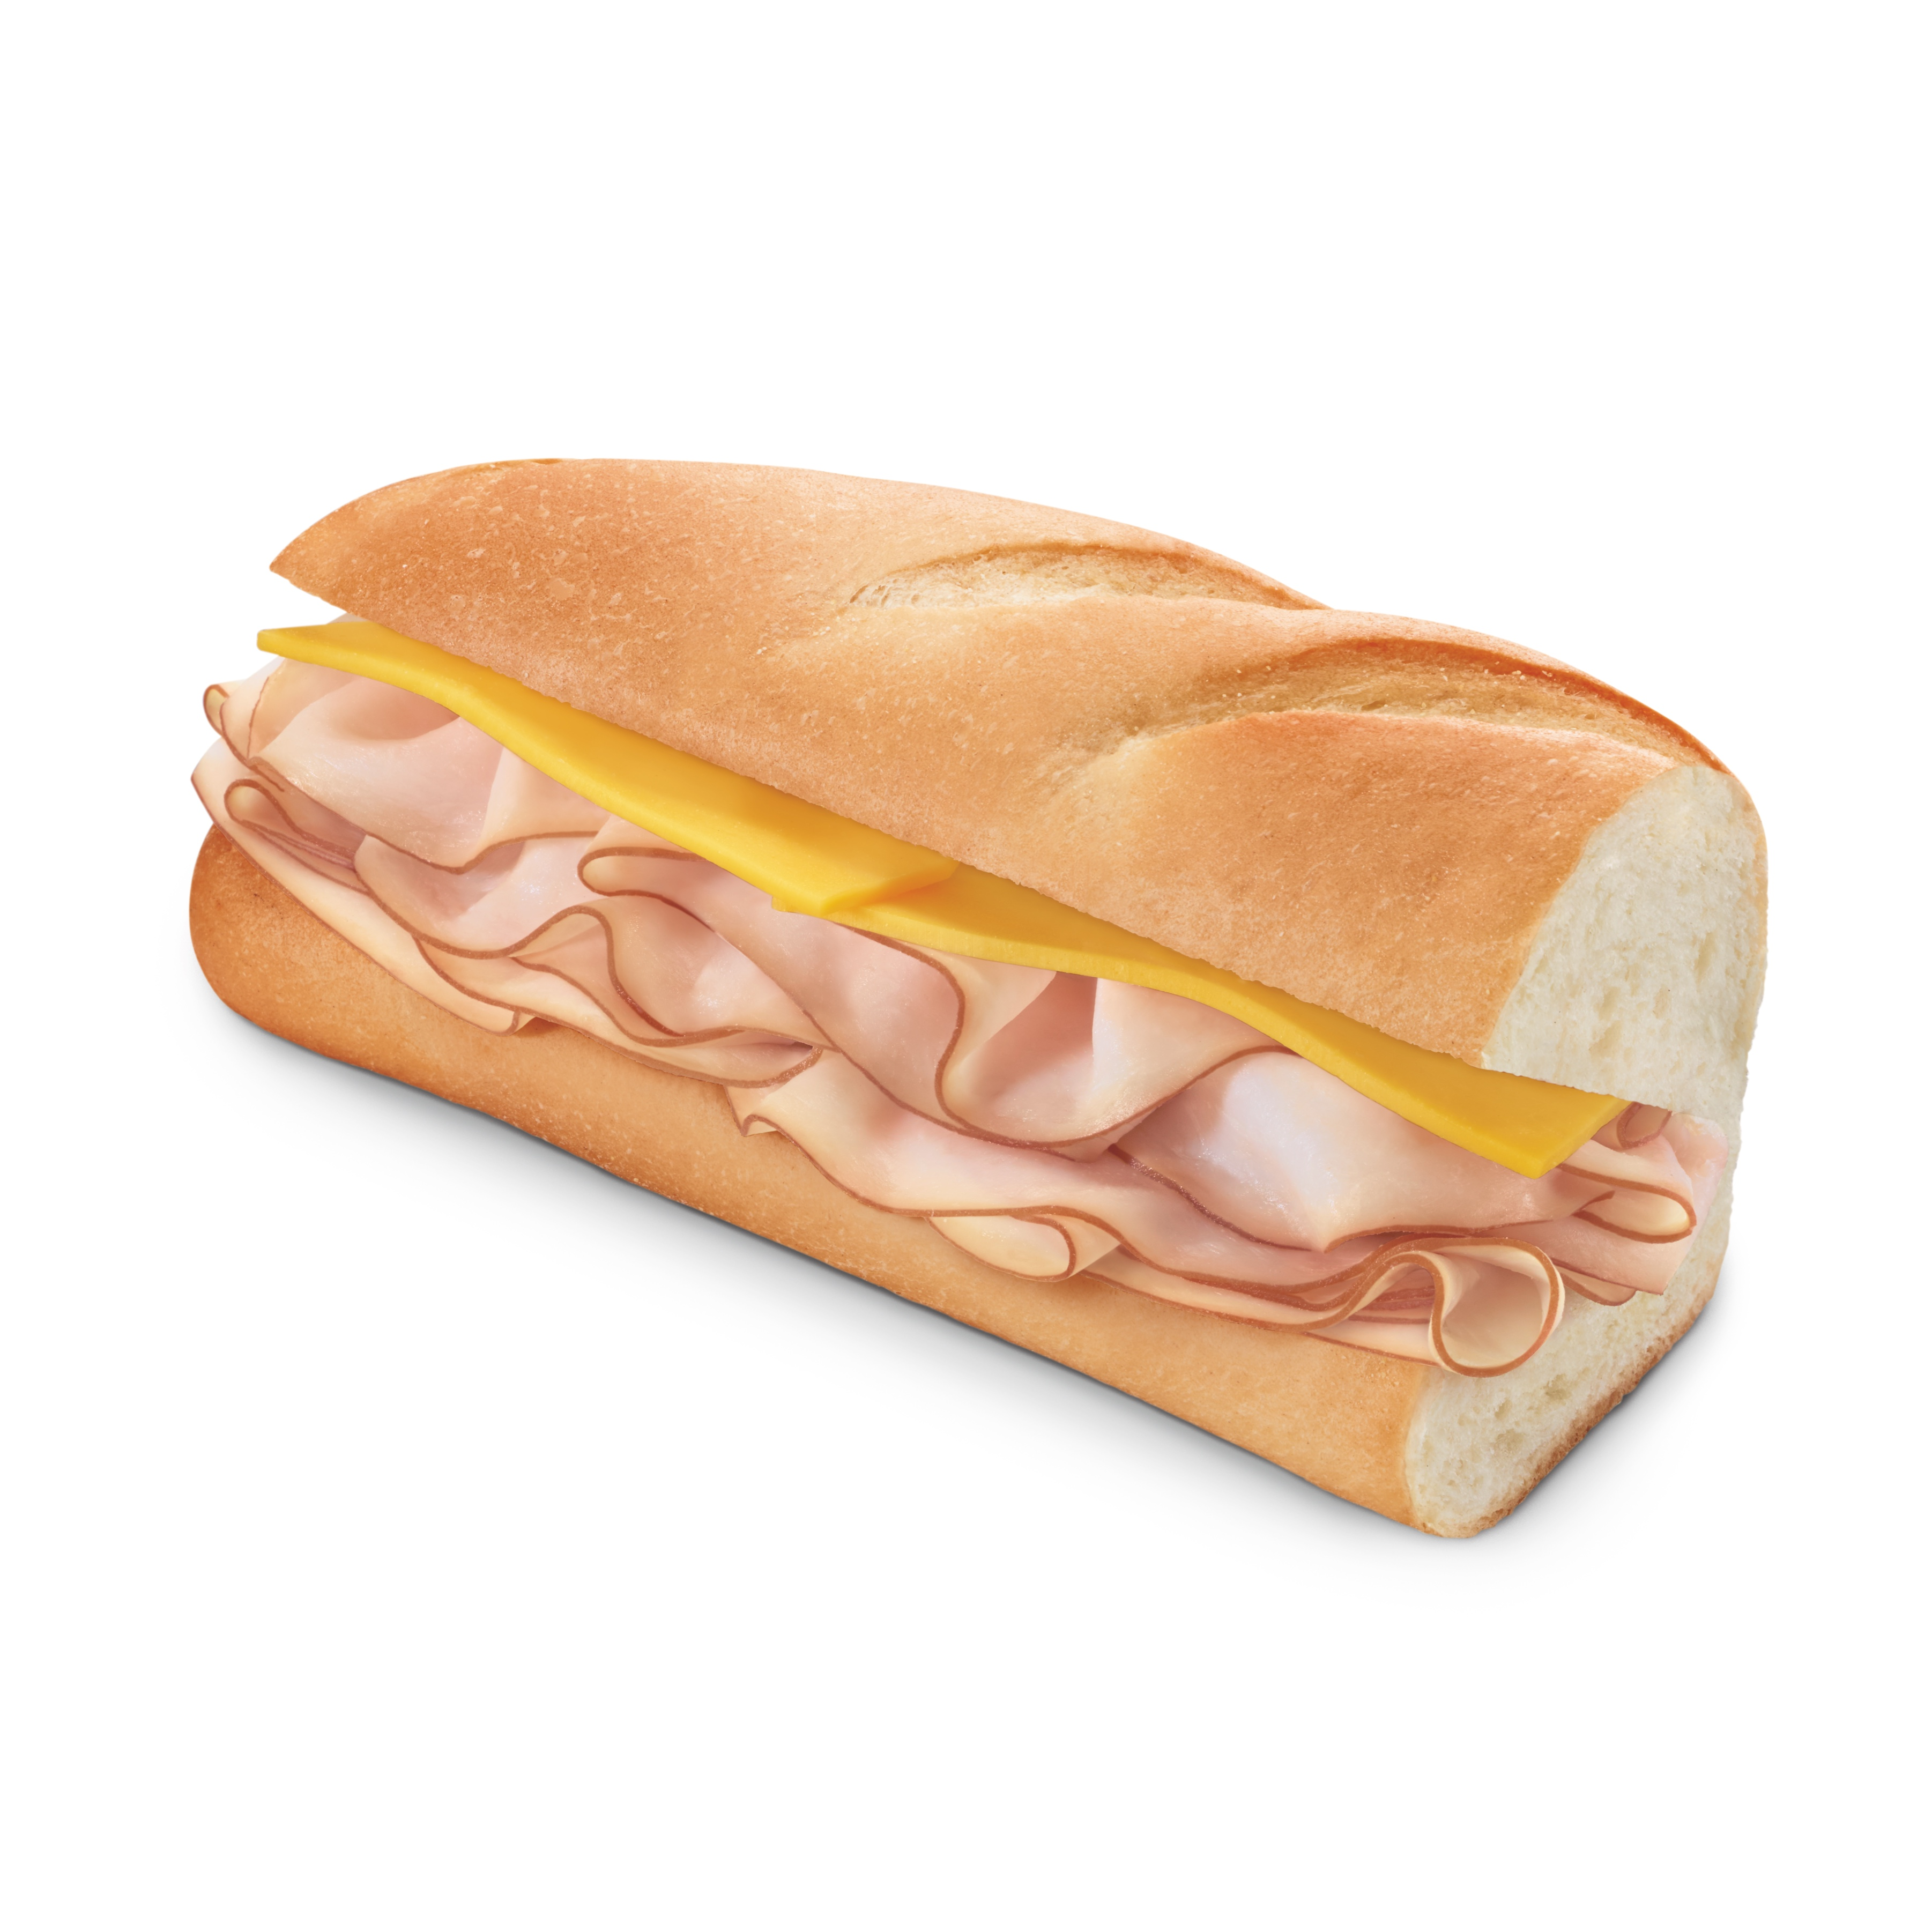 A freshly made 7-Eleven turkey and cheese sub sandwich.